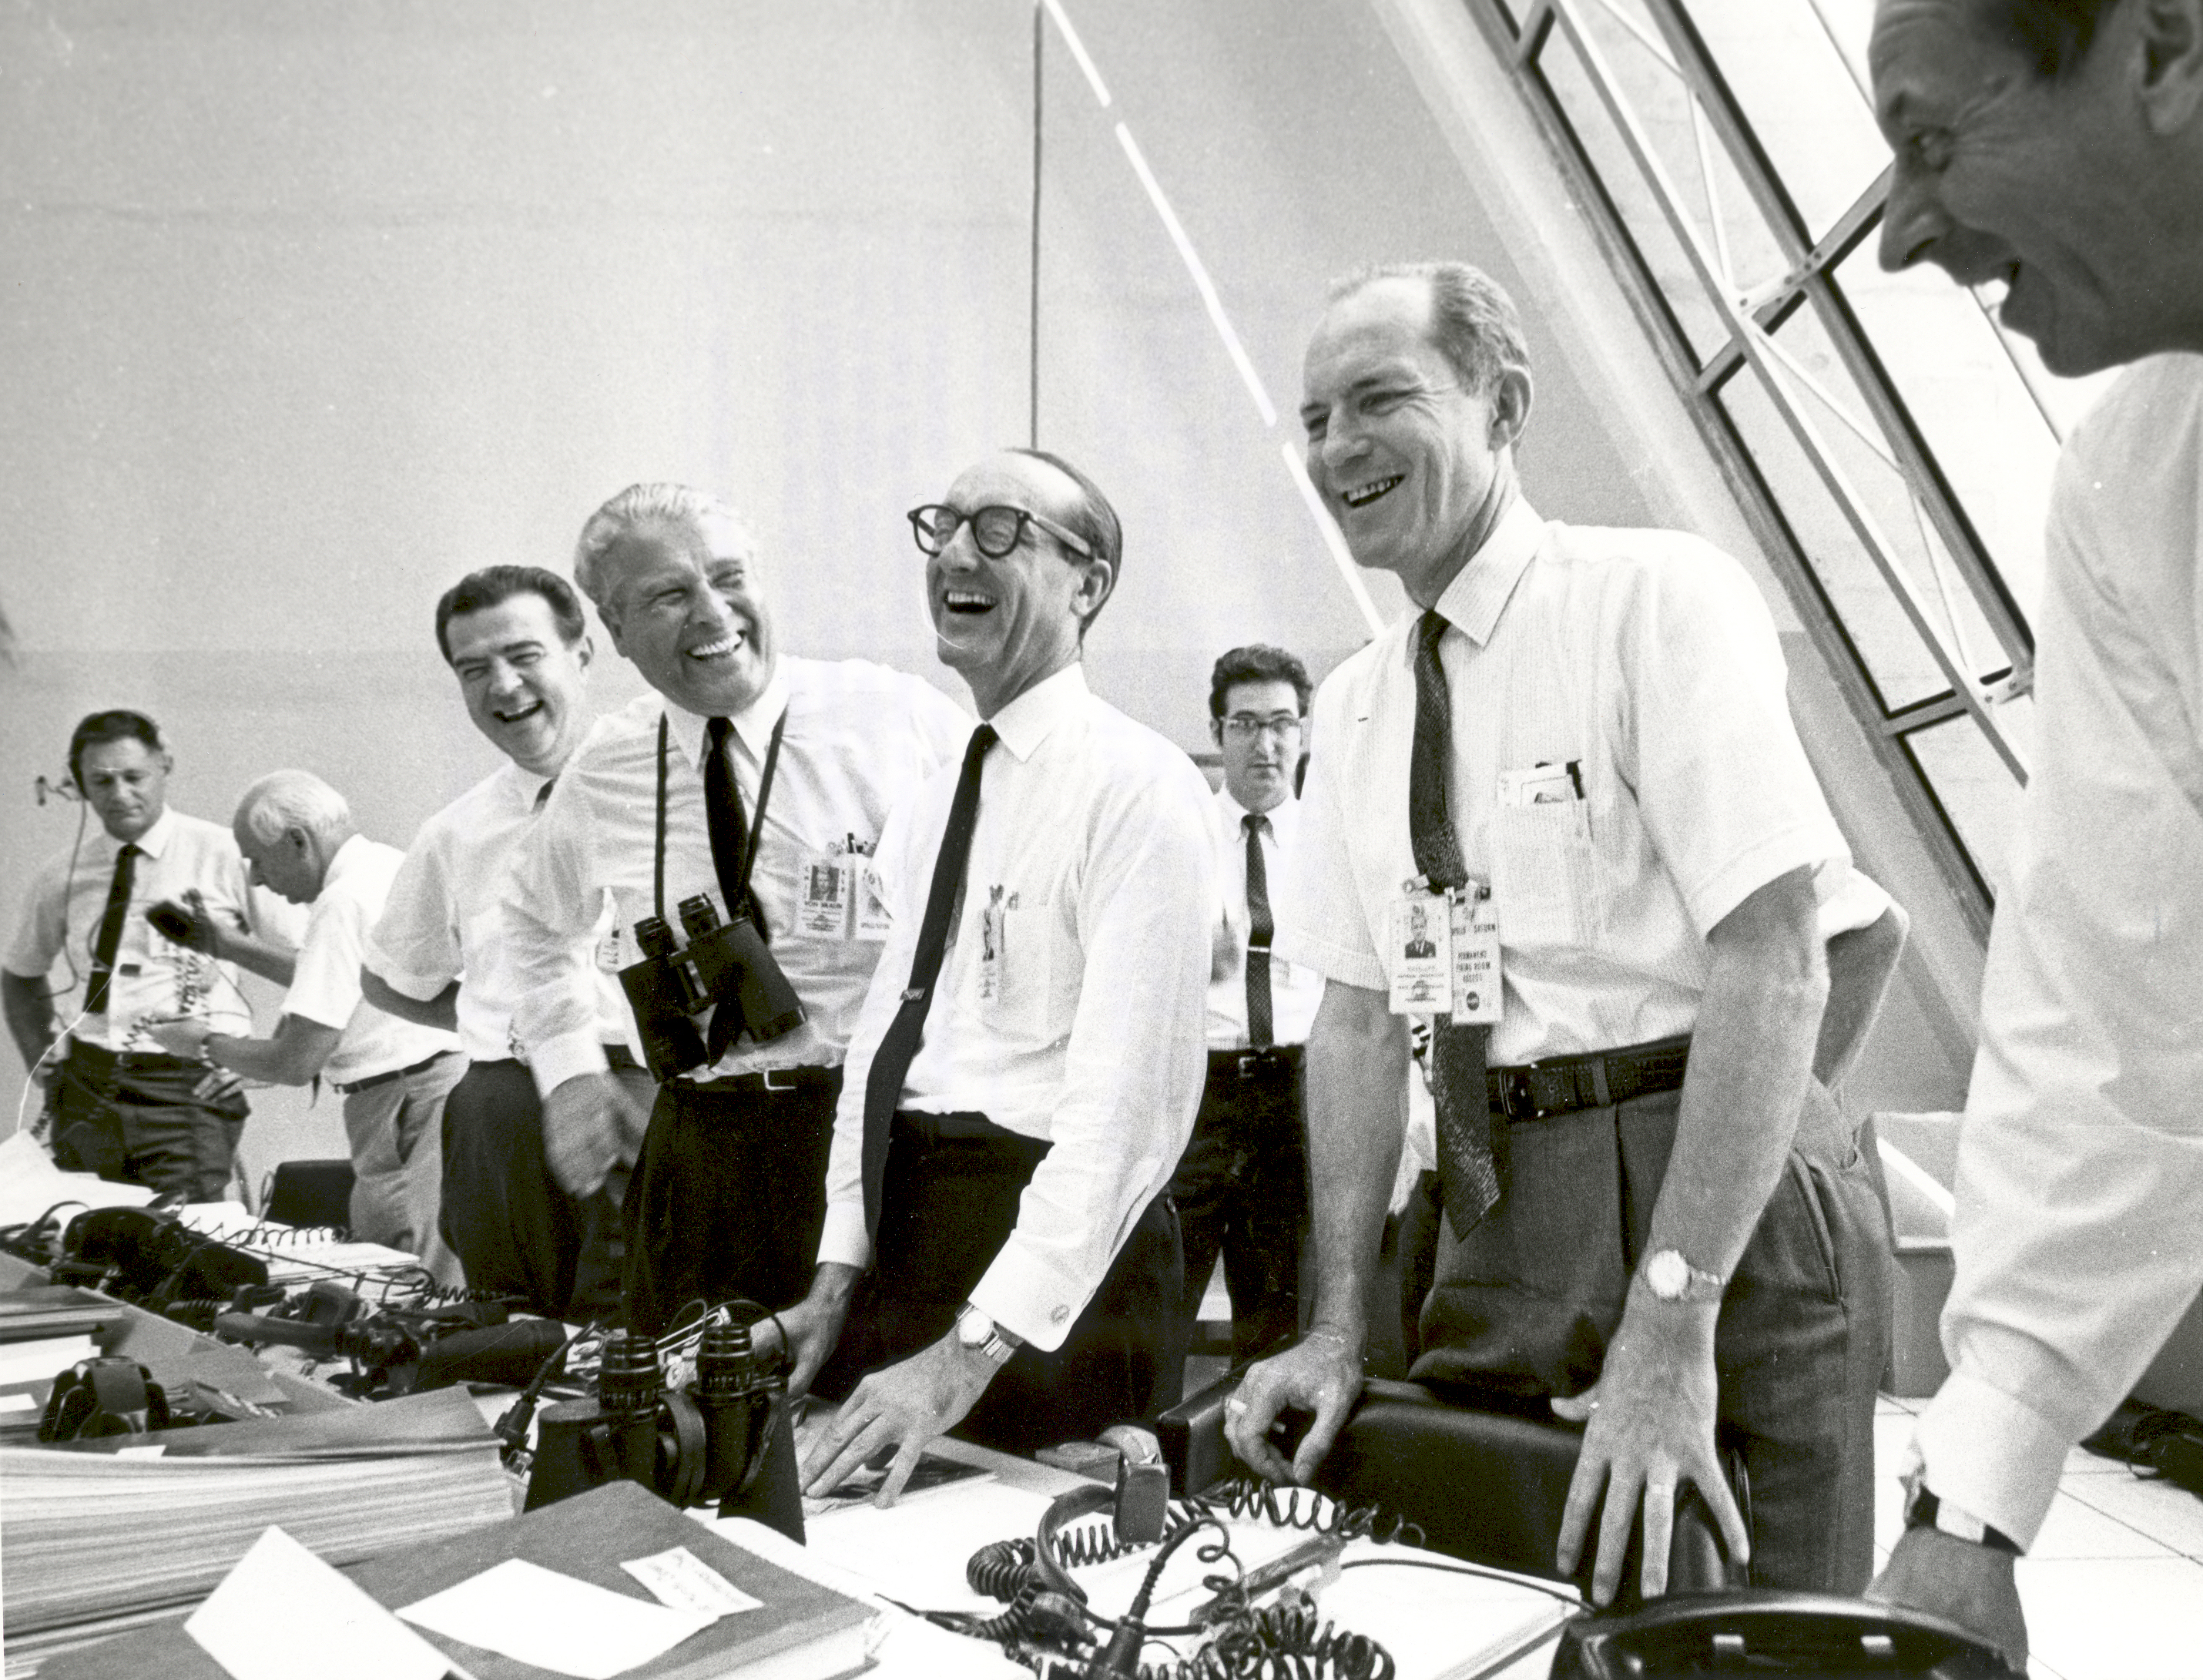 File:Apollo 11 mission officials relax after Apollo 11 ...